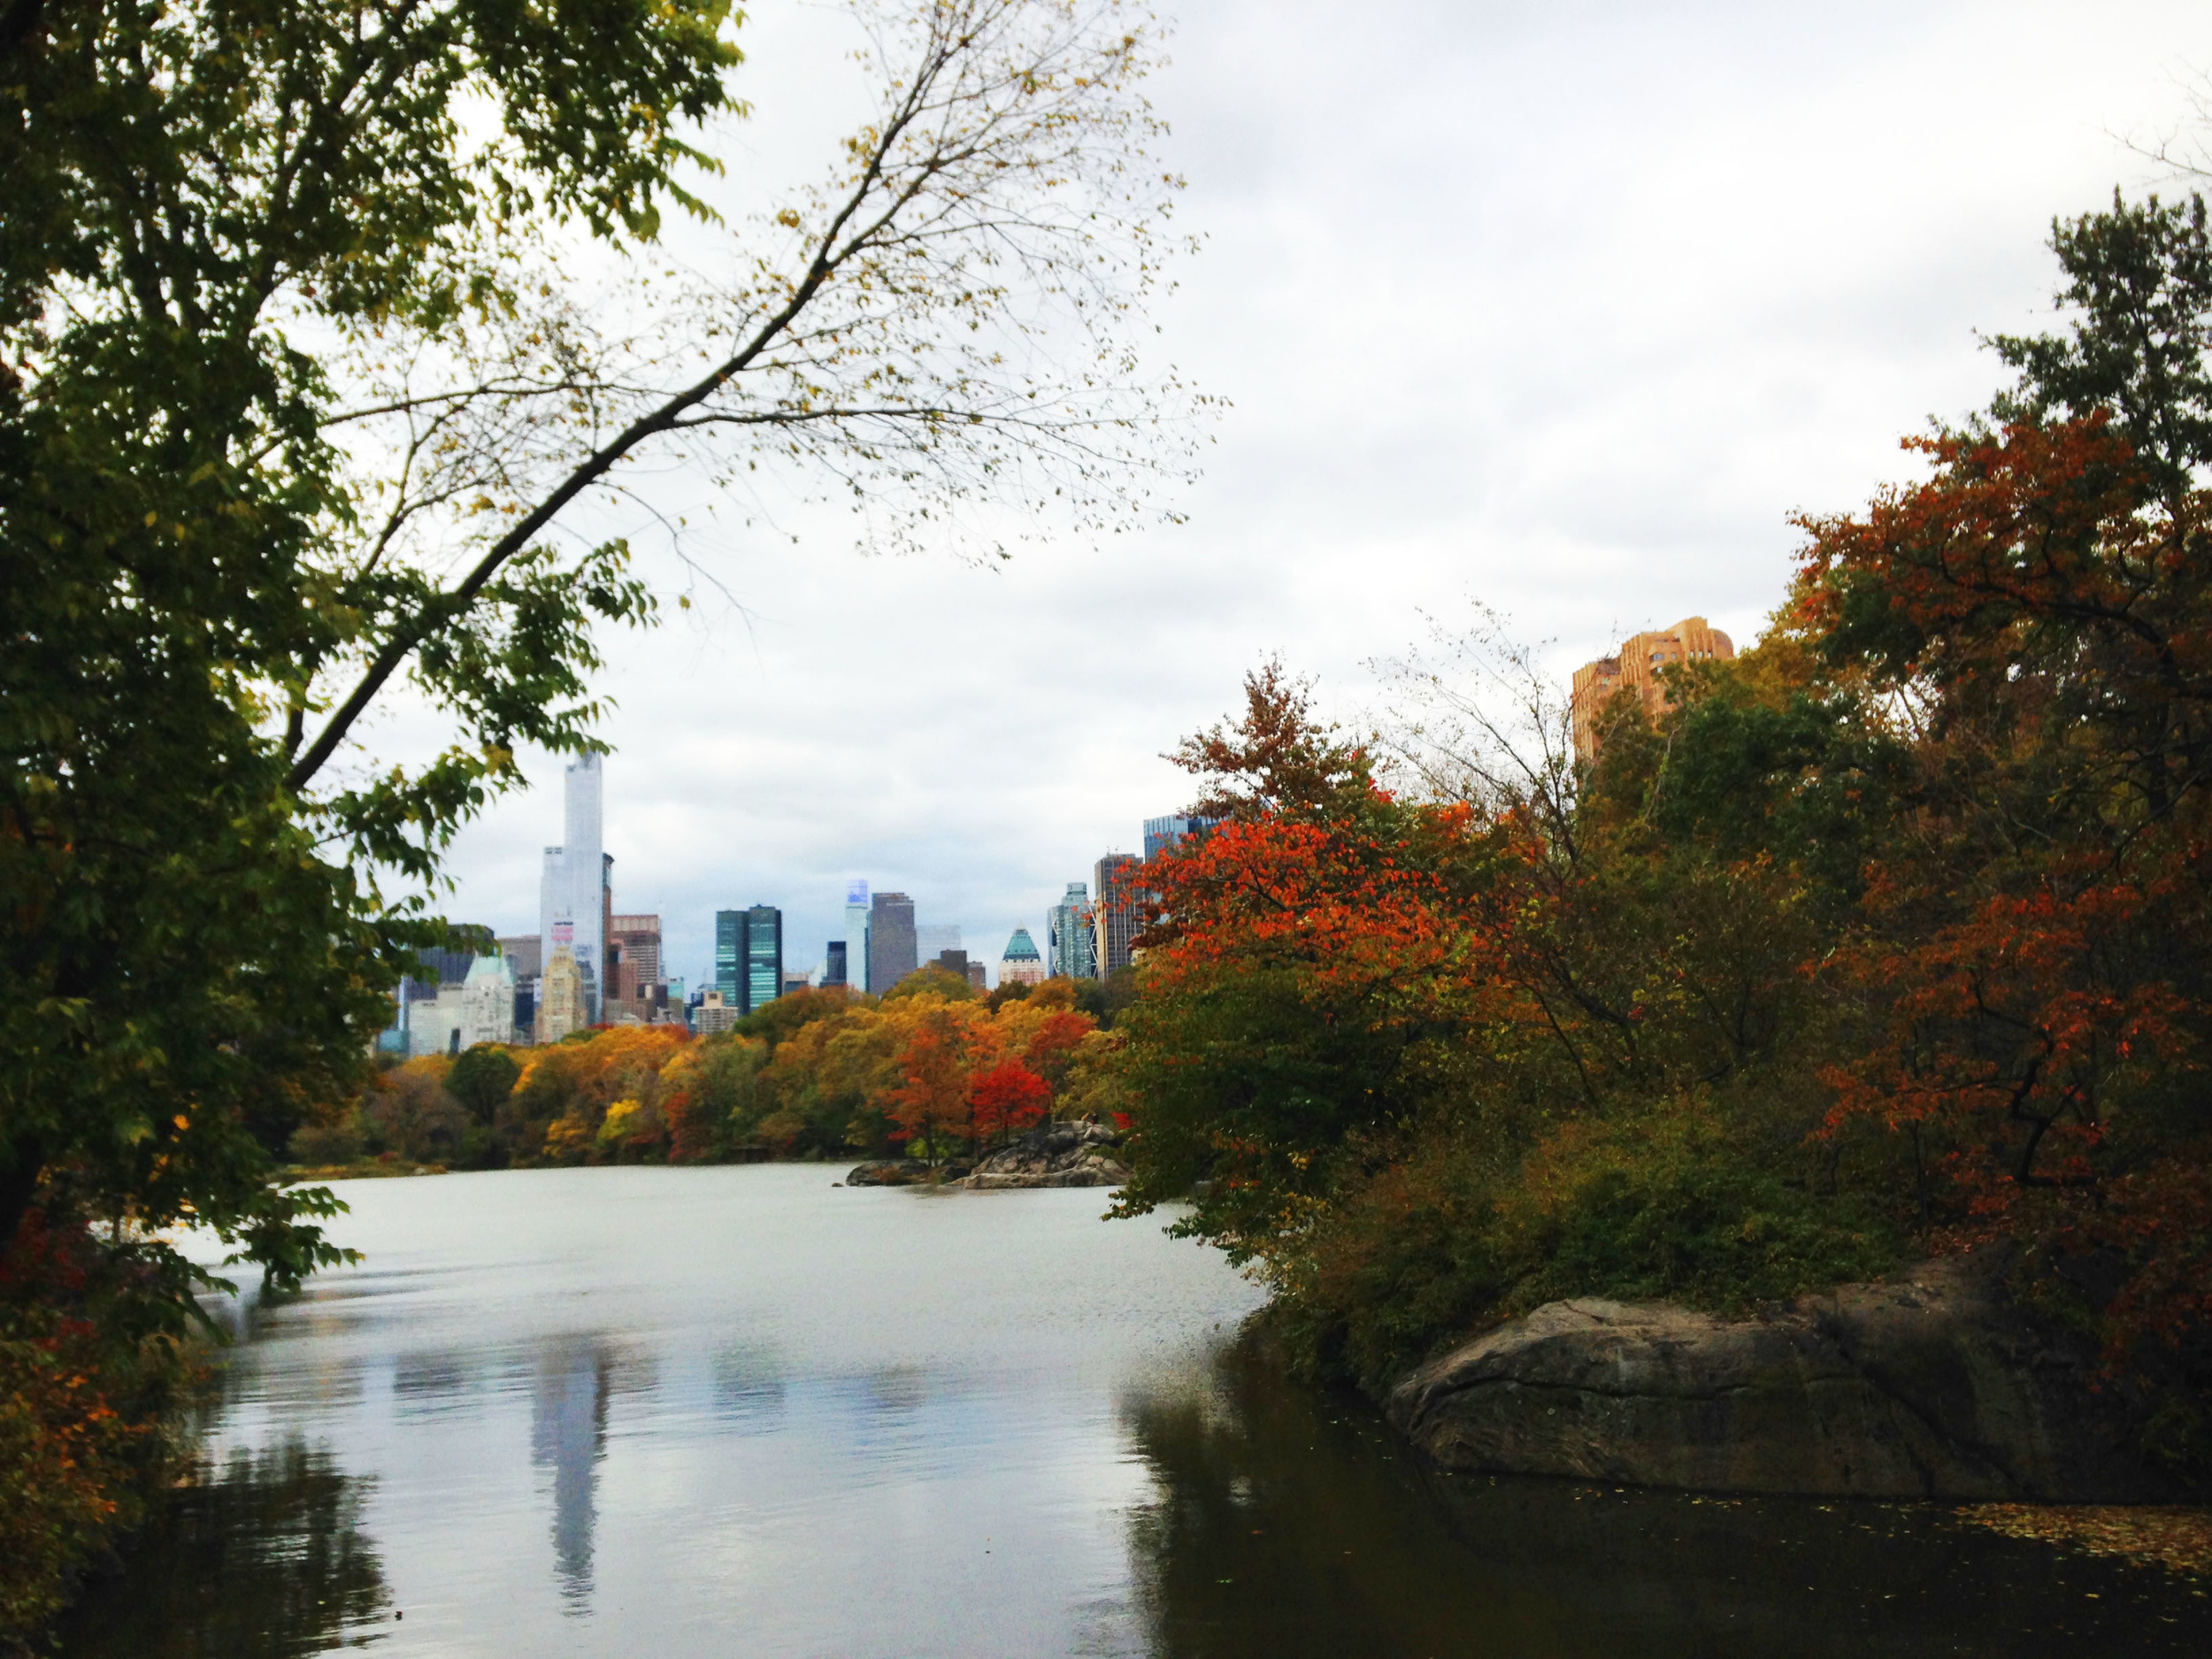 Looking from Central Park to the Midtown skyline